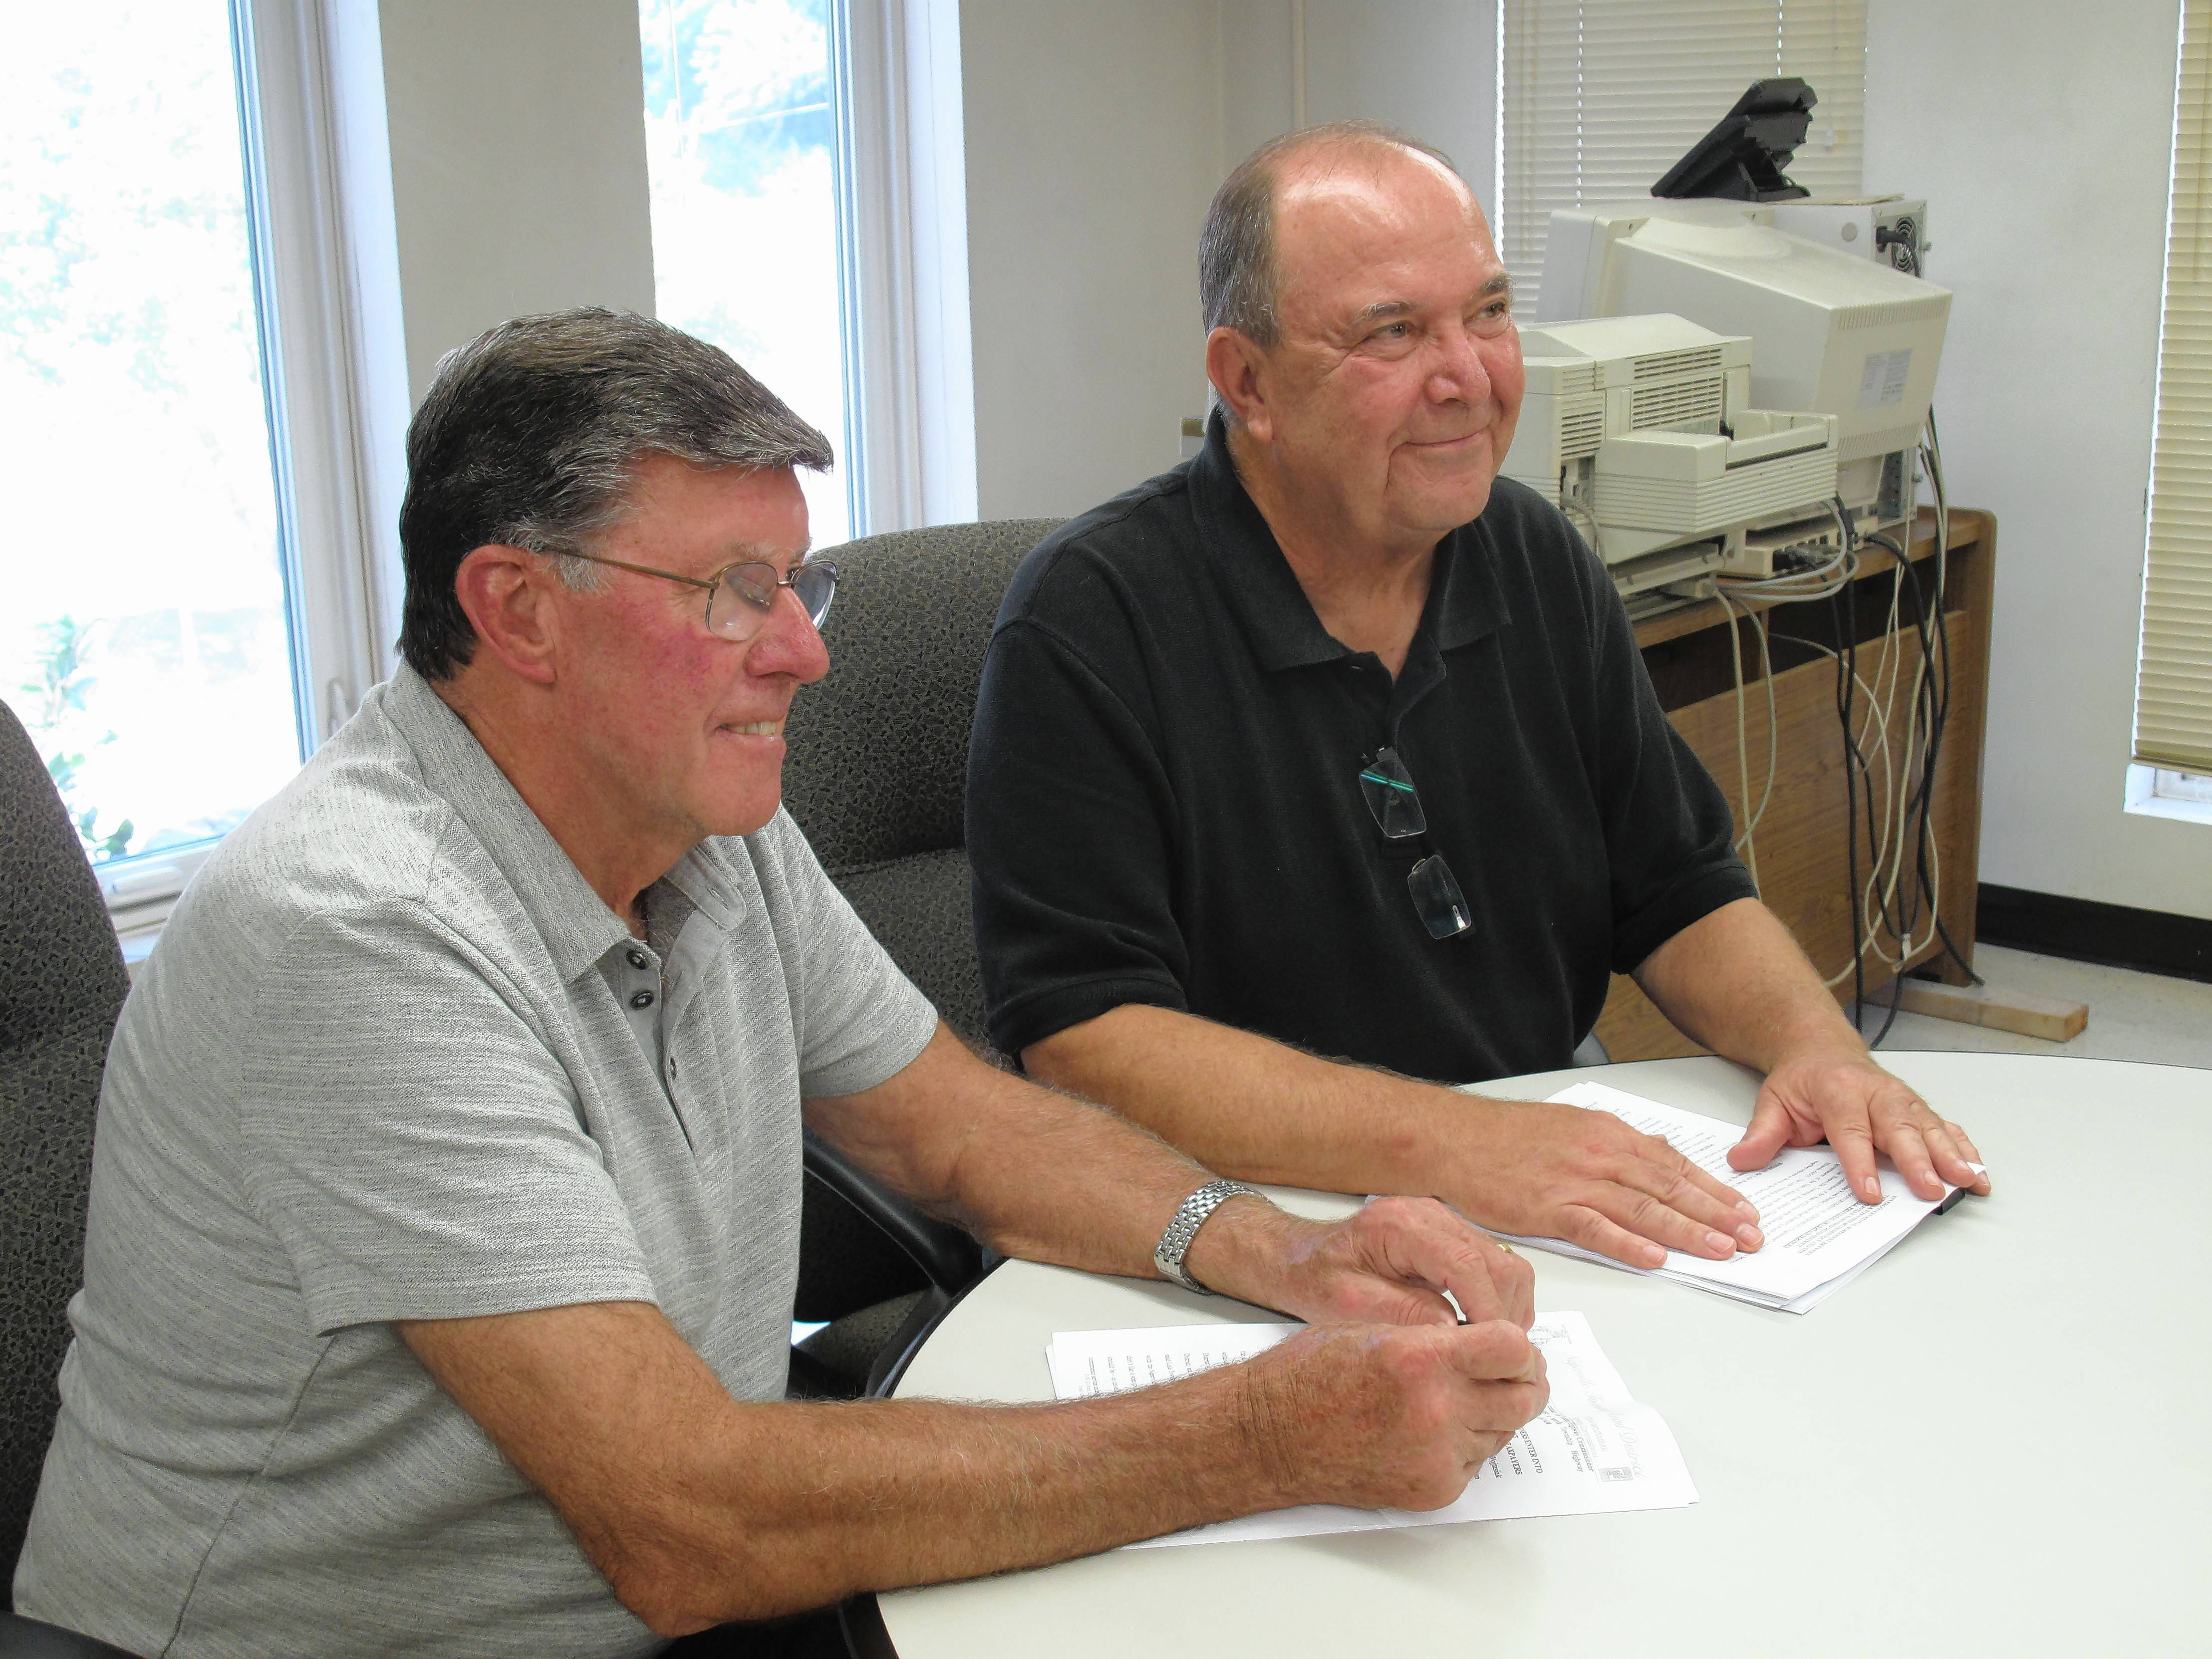 The duties of highway commissioners Stan Wojtasiak of Naperville Township, left, and Ed Young of Lisle Township could be fulfilled by one elected official beginning in four years if voters approve a merger between the two units of government to create a Lisle/Naperville township road district.